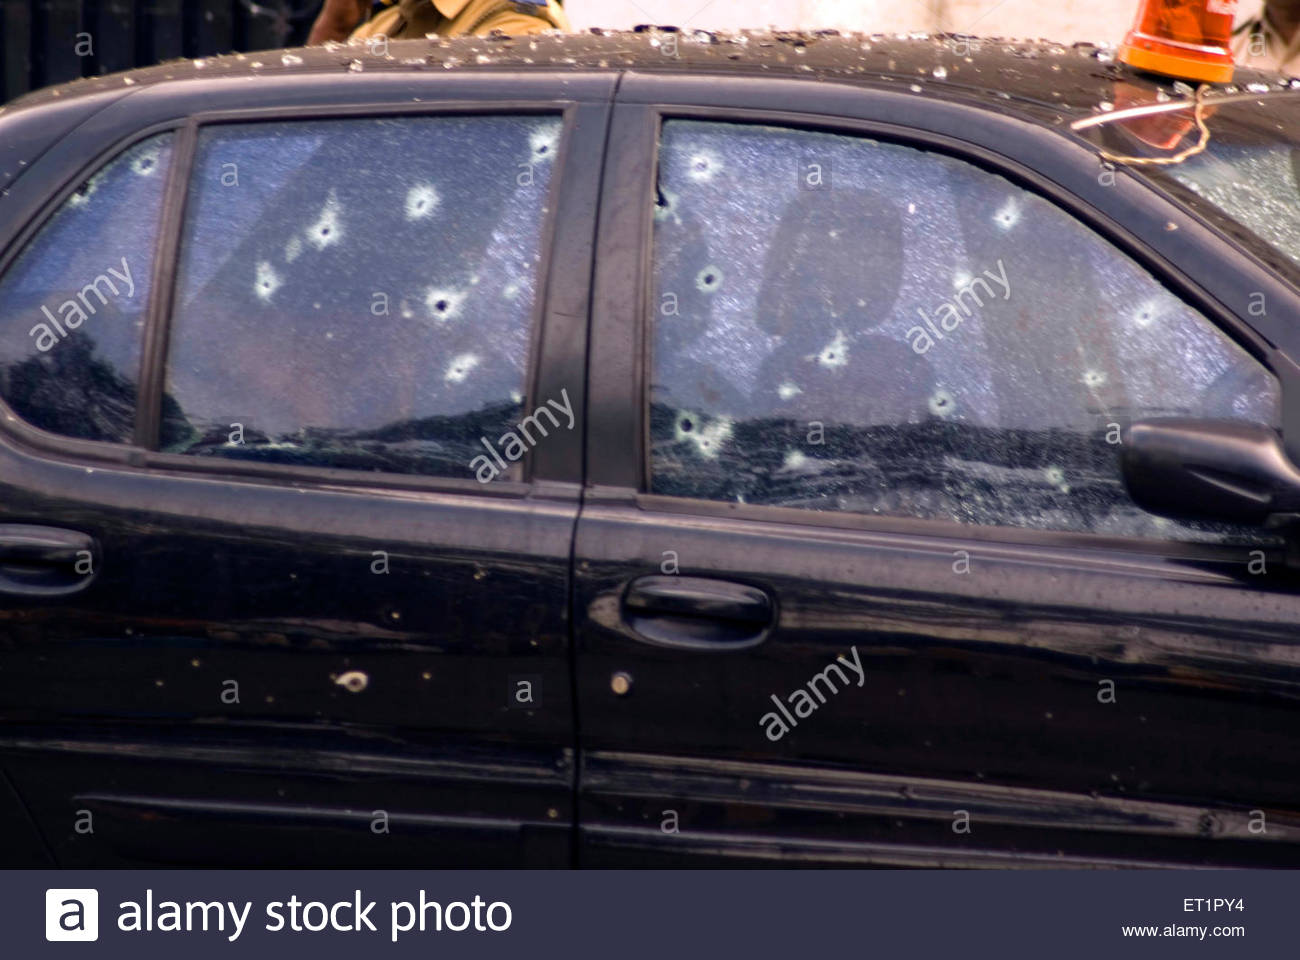 bullet marks holes of ak 47 machine gun black car terrorist attack stock photo royalty free. Black Bedroom Furniture Sets. Home Design Ideas